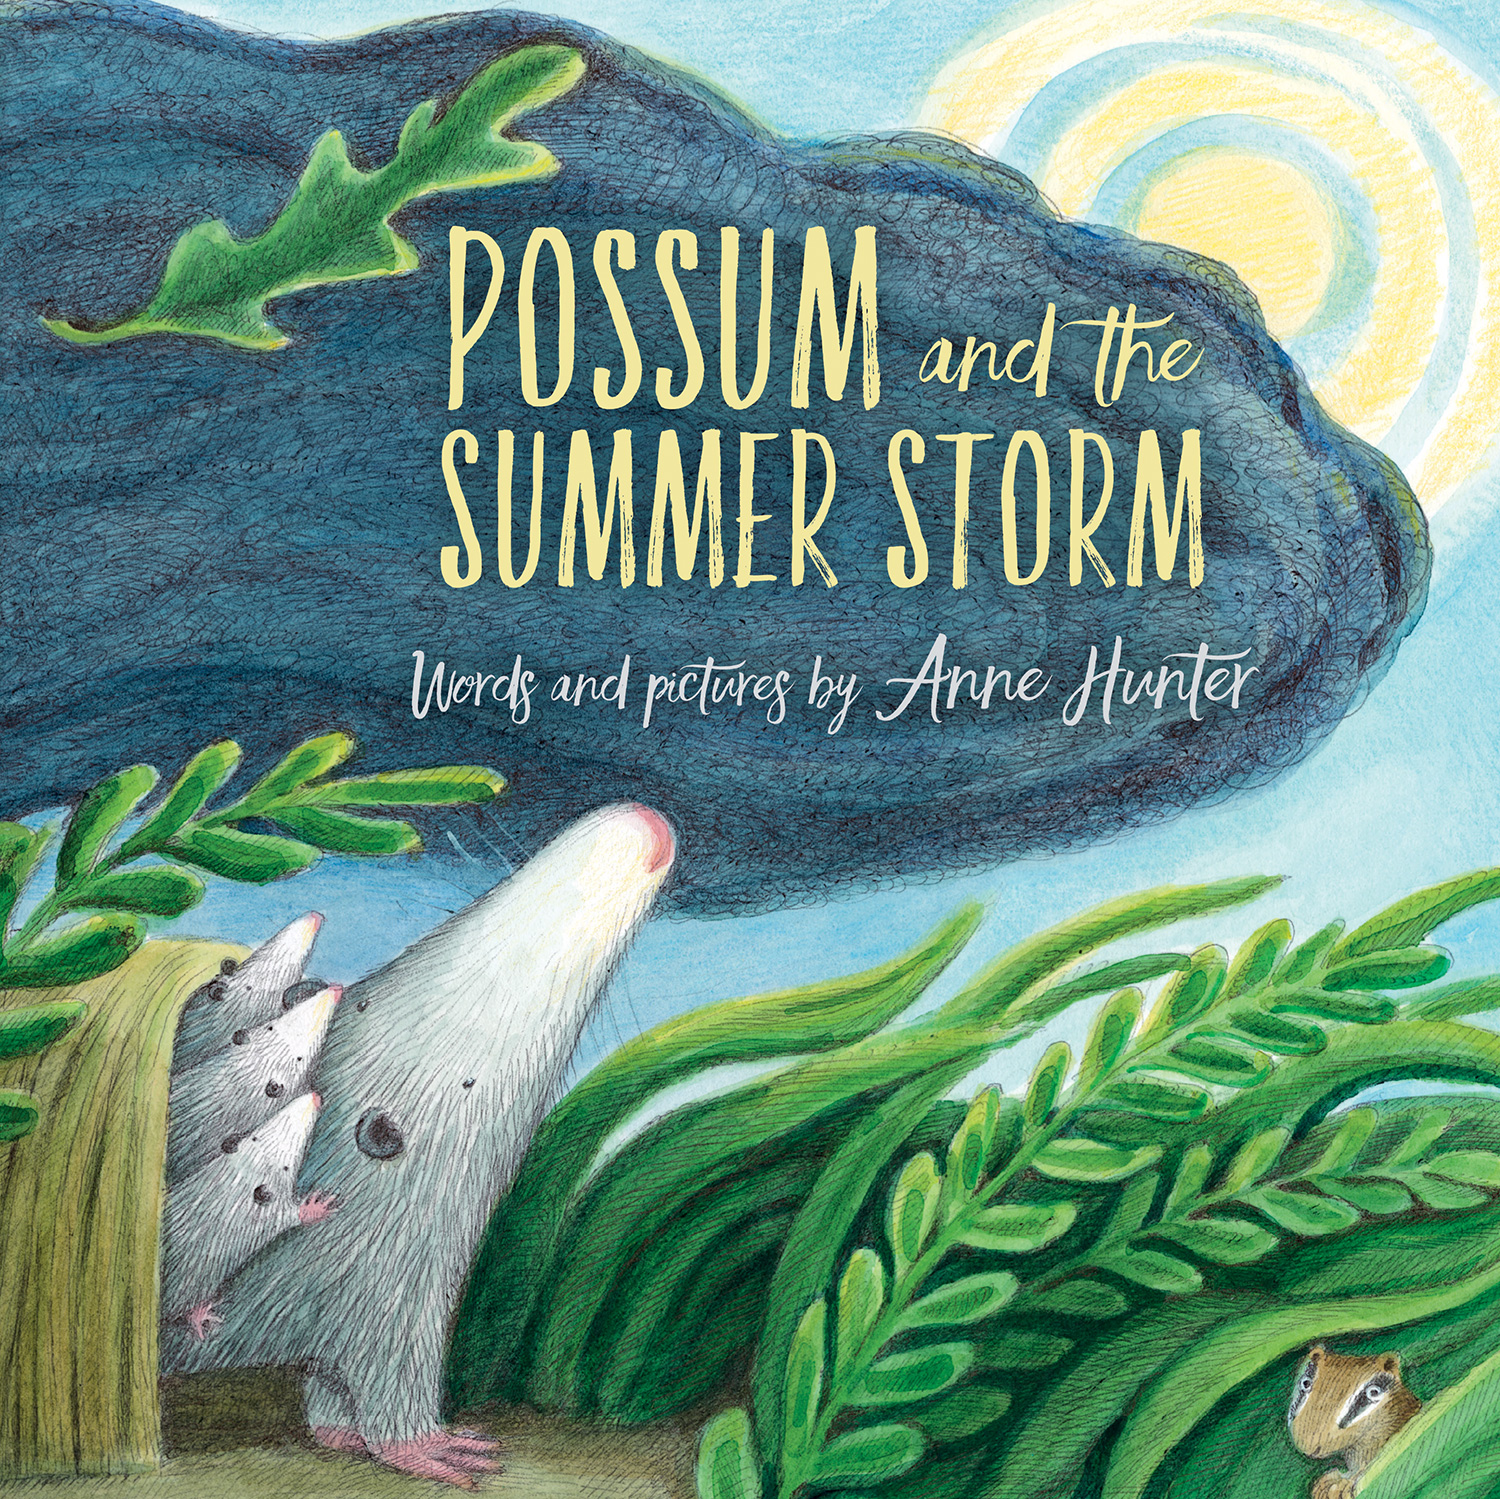 Possum and the Summer Storm-9780544898912